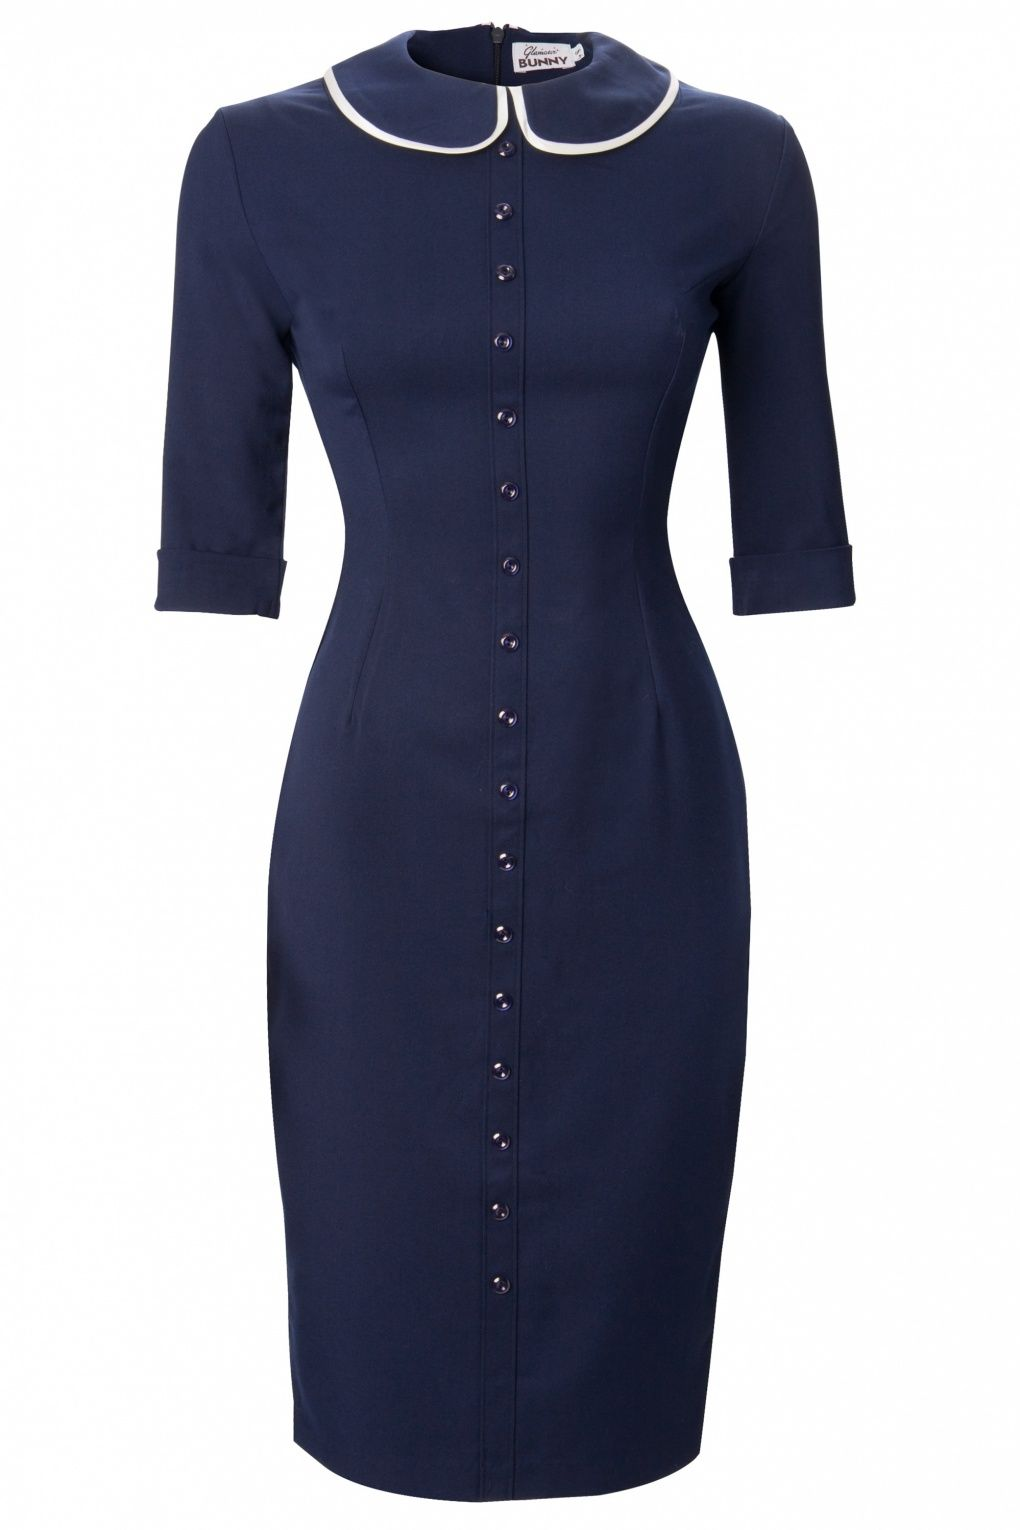 545797e42715 Glamour Bunny - Glamour Bunny - TopVintage exclusive ~ Miss Prim Peter Pan  collar pencil dress na